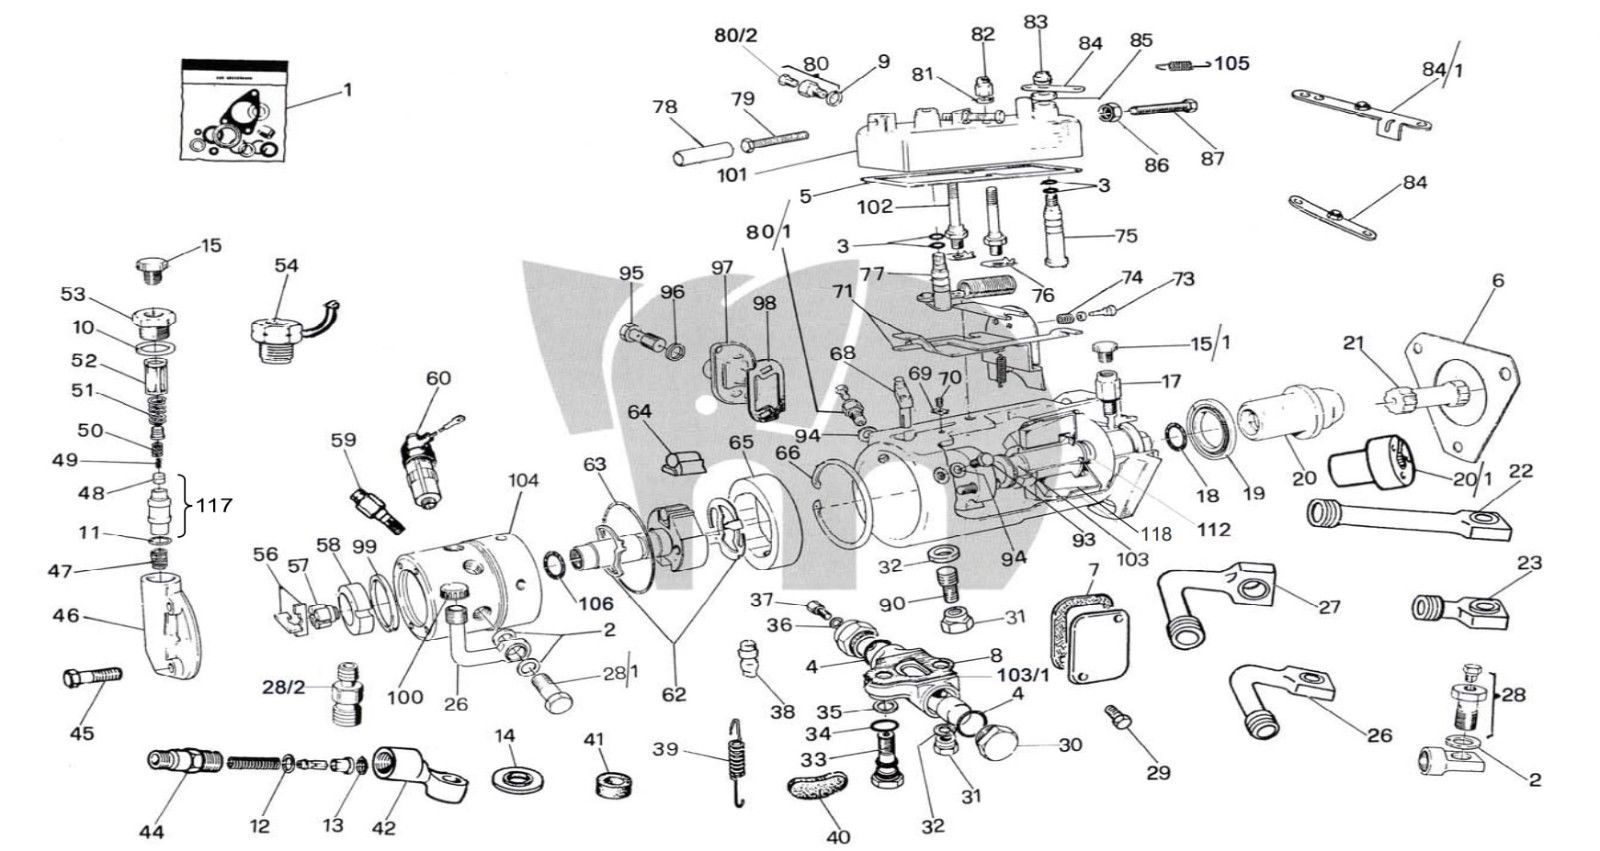 KEBP00640119 besides P652011 further P465800 further Overhaul Rebuild Kit Cav Lucas Dpa Rotodiesel Delphi Gasket Tractor  plete Oem furthermore Dixon Mower Wiring Diagram. on caterpillar engine exploded view